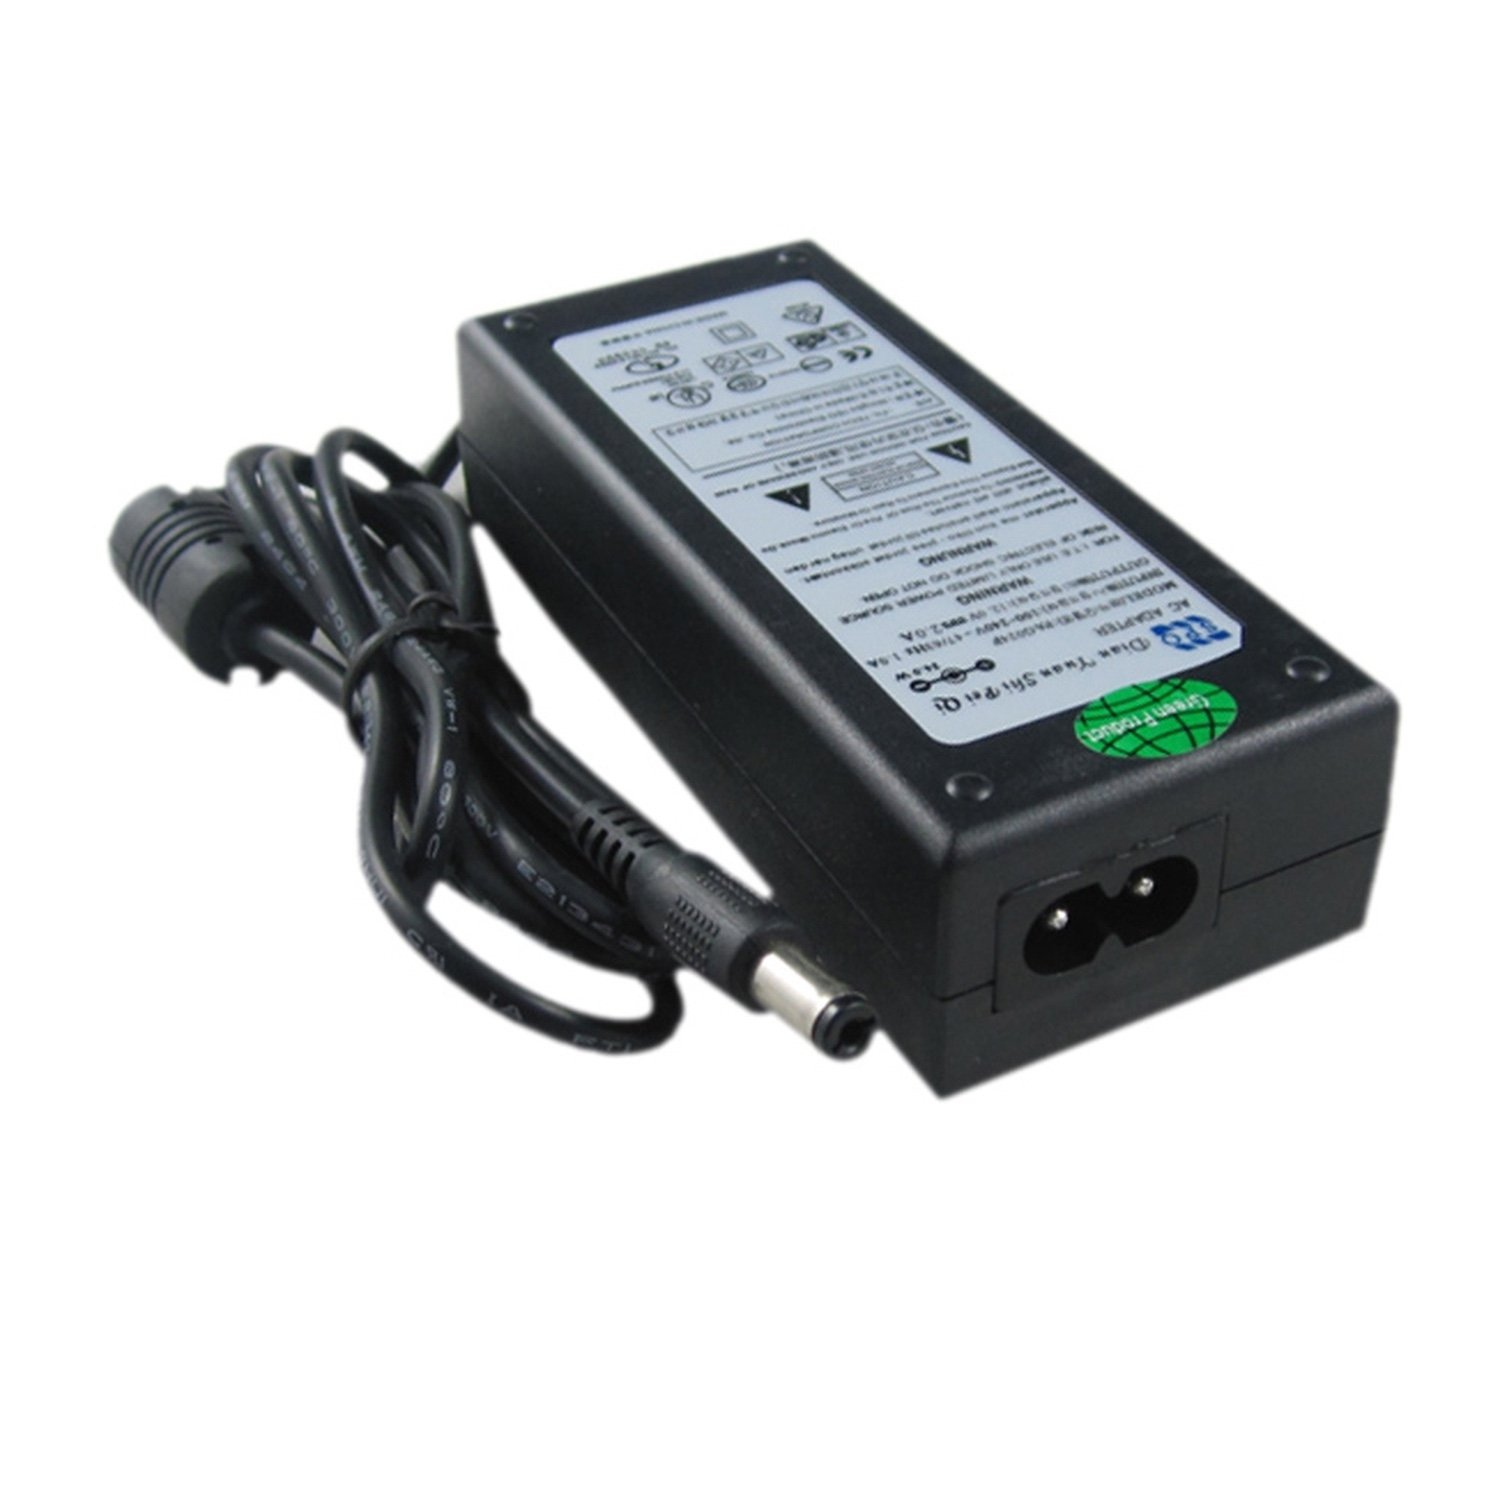 DREAMBOX DM 500-S BLACK BOX POWER SUPPLY